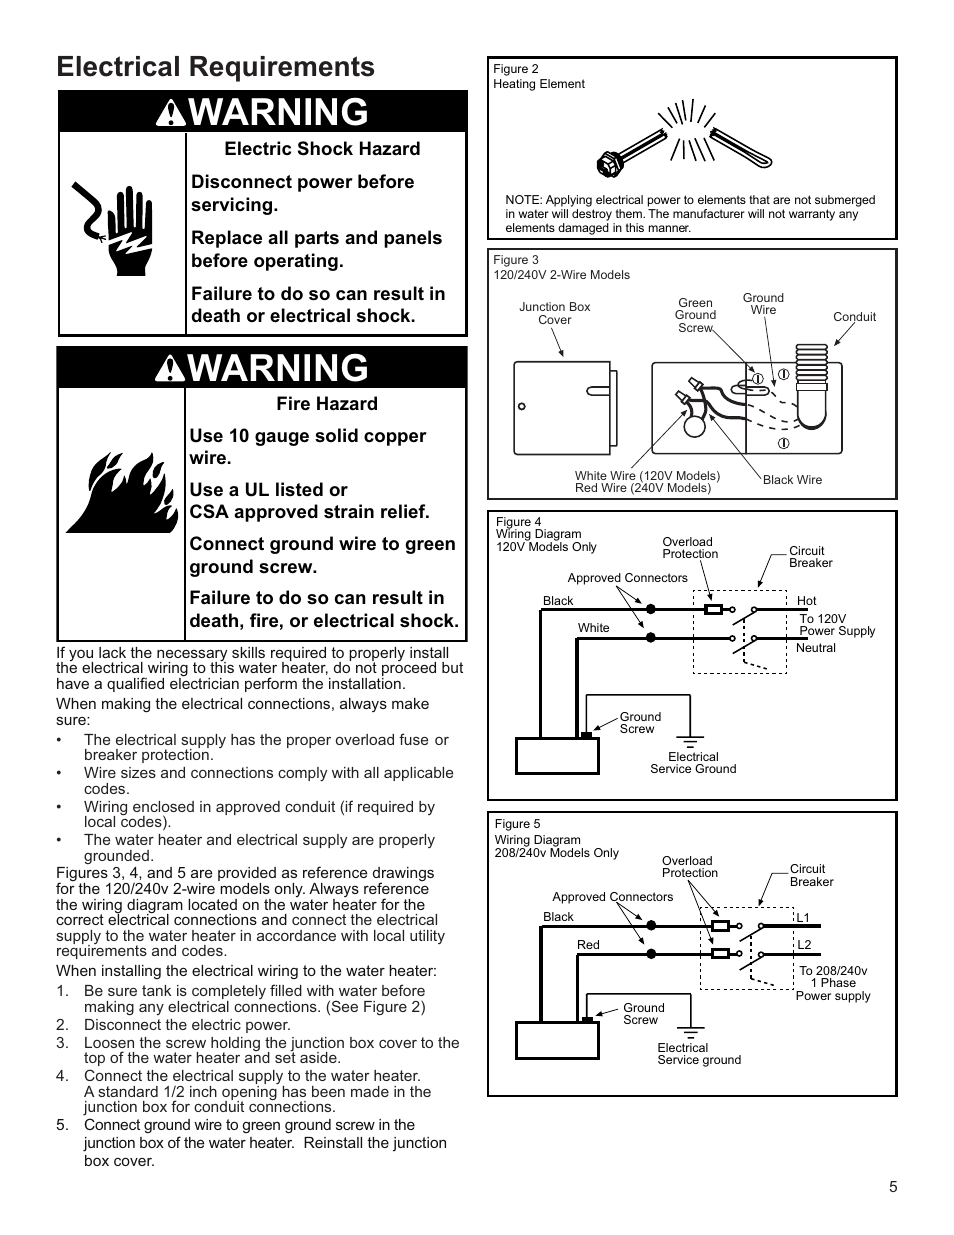 medium resolution of warning electrical requirements whirlpool e2f65hd045v user manual page 5 16